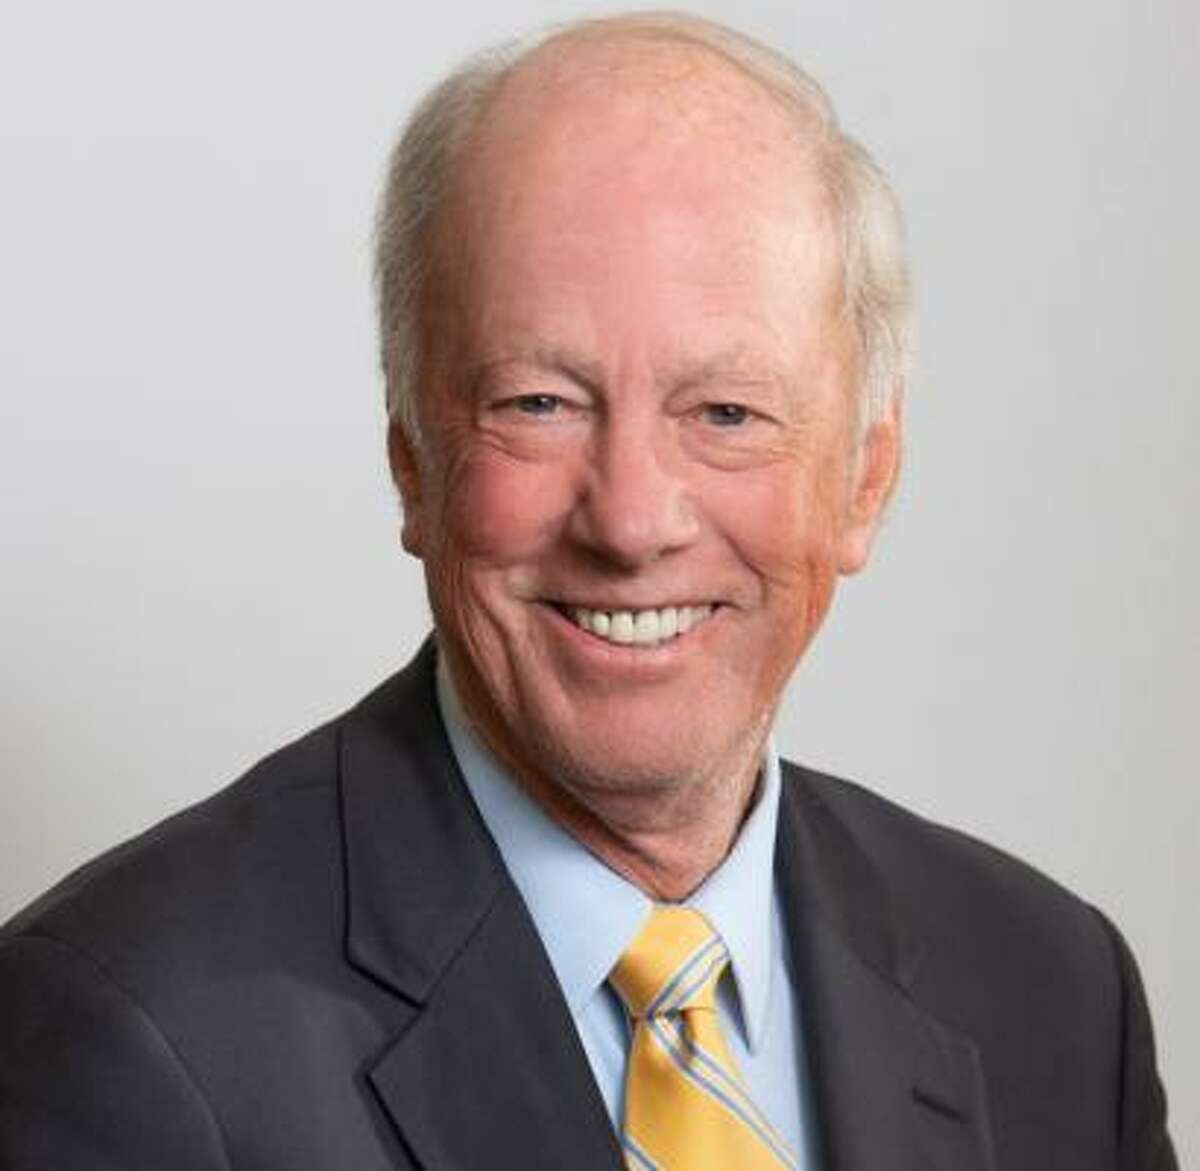 George Milne, a retired Pfizer executive, has donated $5 million to Gaylord Specialty Health to launch a new research unit at the Wallingford health care facility.